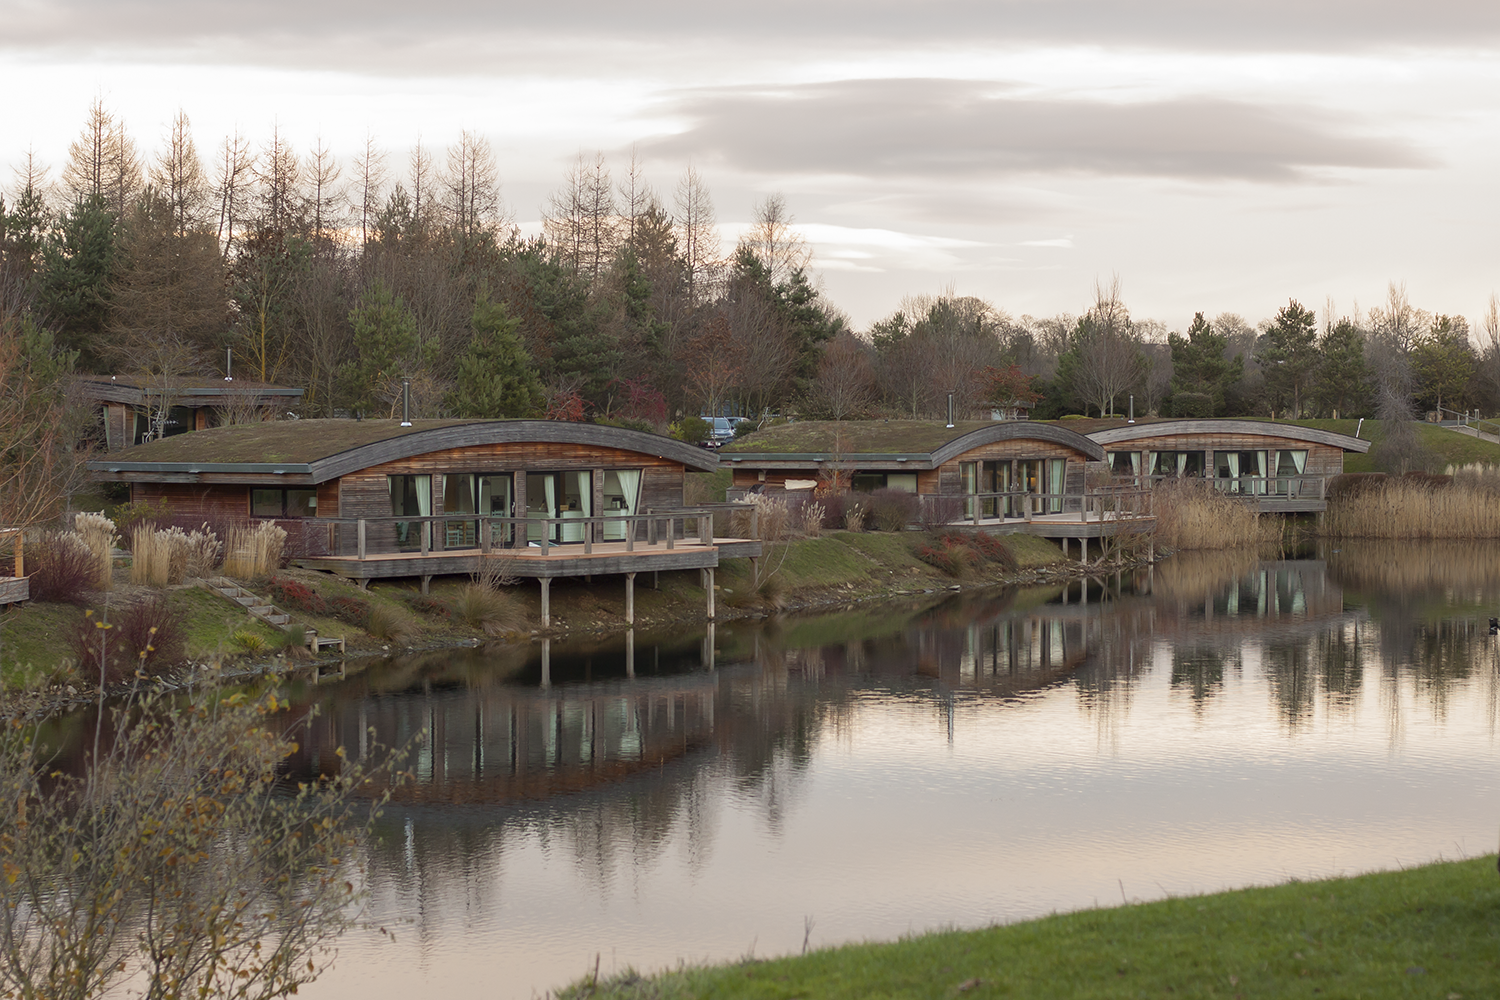 The lakeside lodges at Brompton Lakes